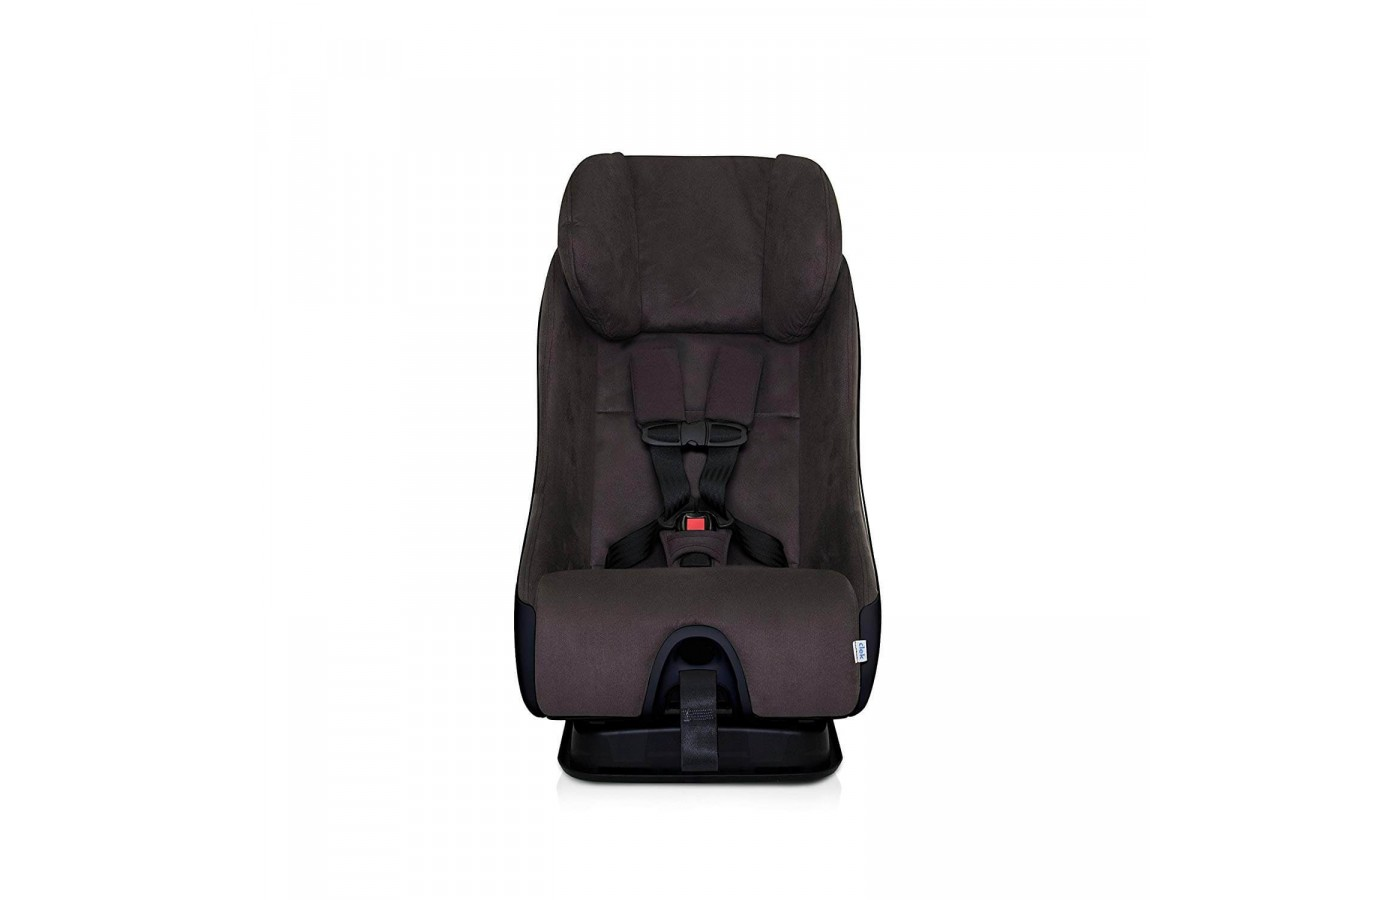 The Clek Fllo is a convertible car seat.